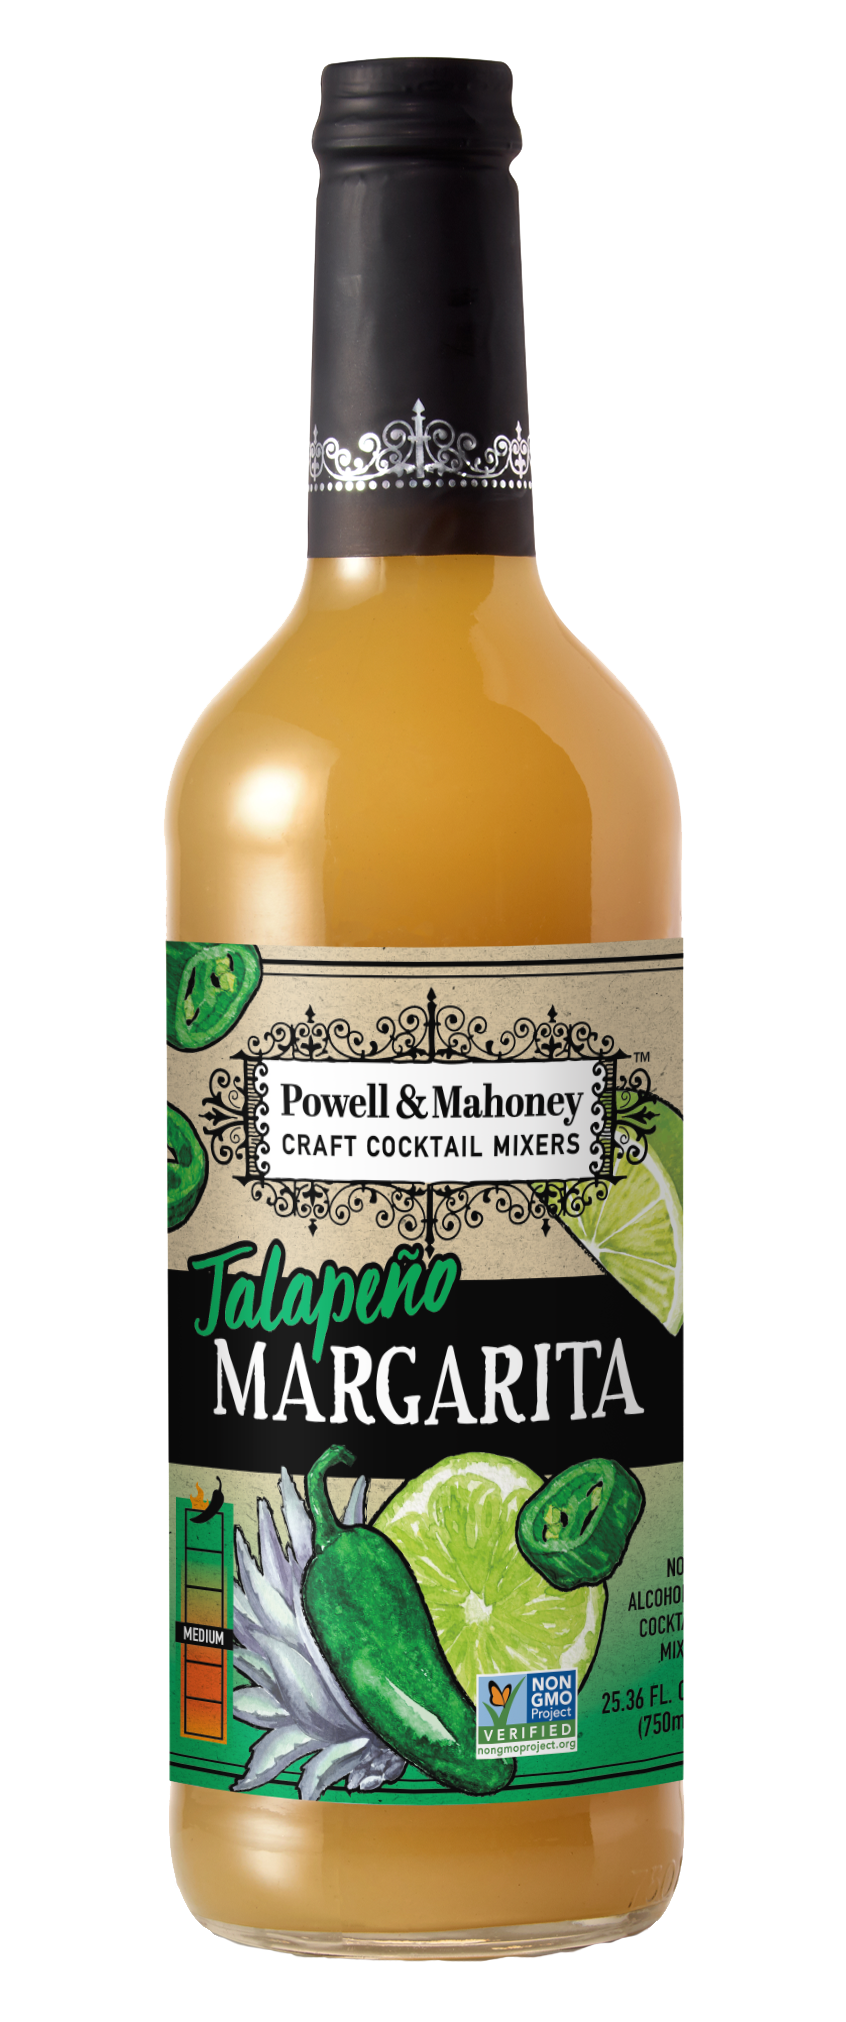 Powell & Mahoney Jalapeno Margarita Mixer - 750mL Bottle